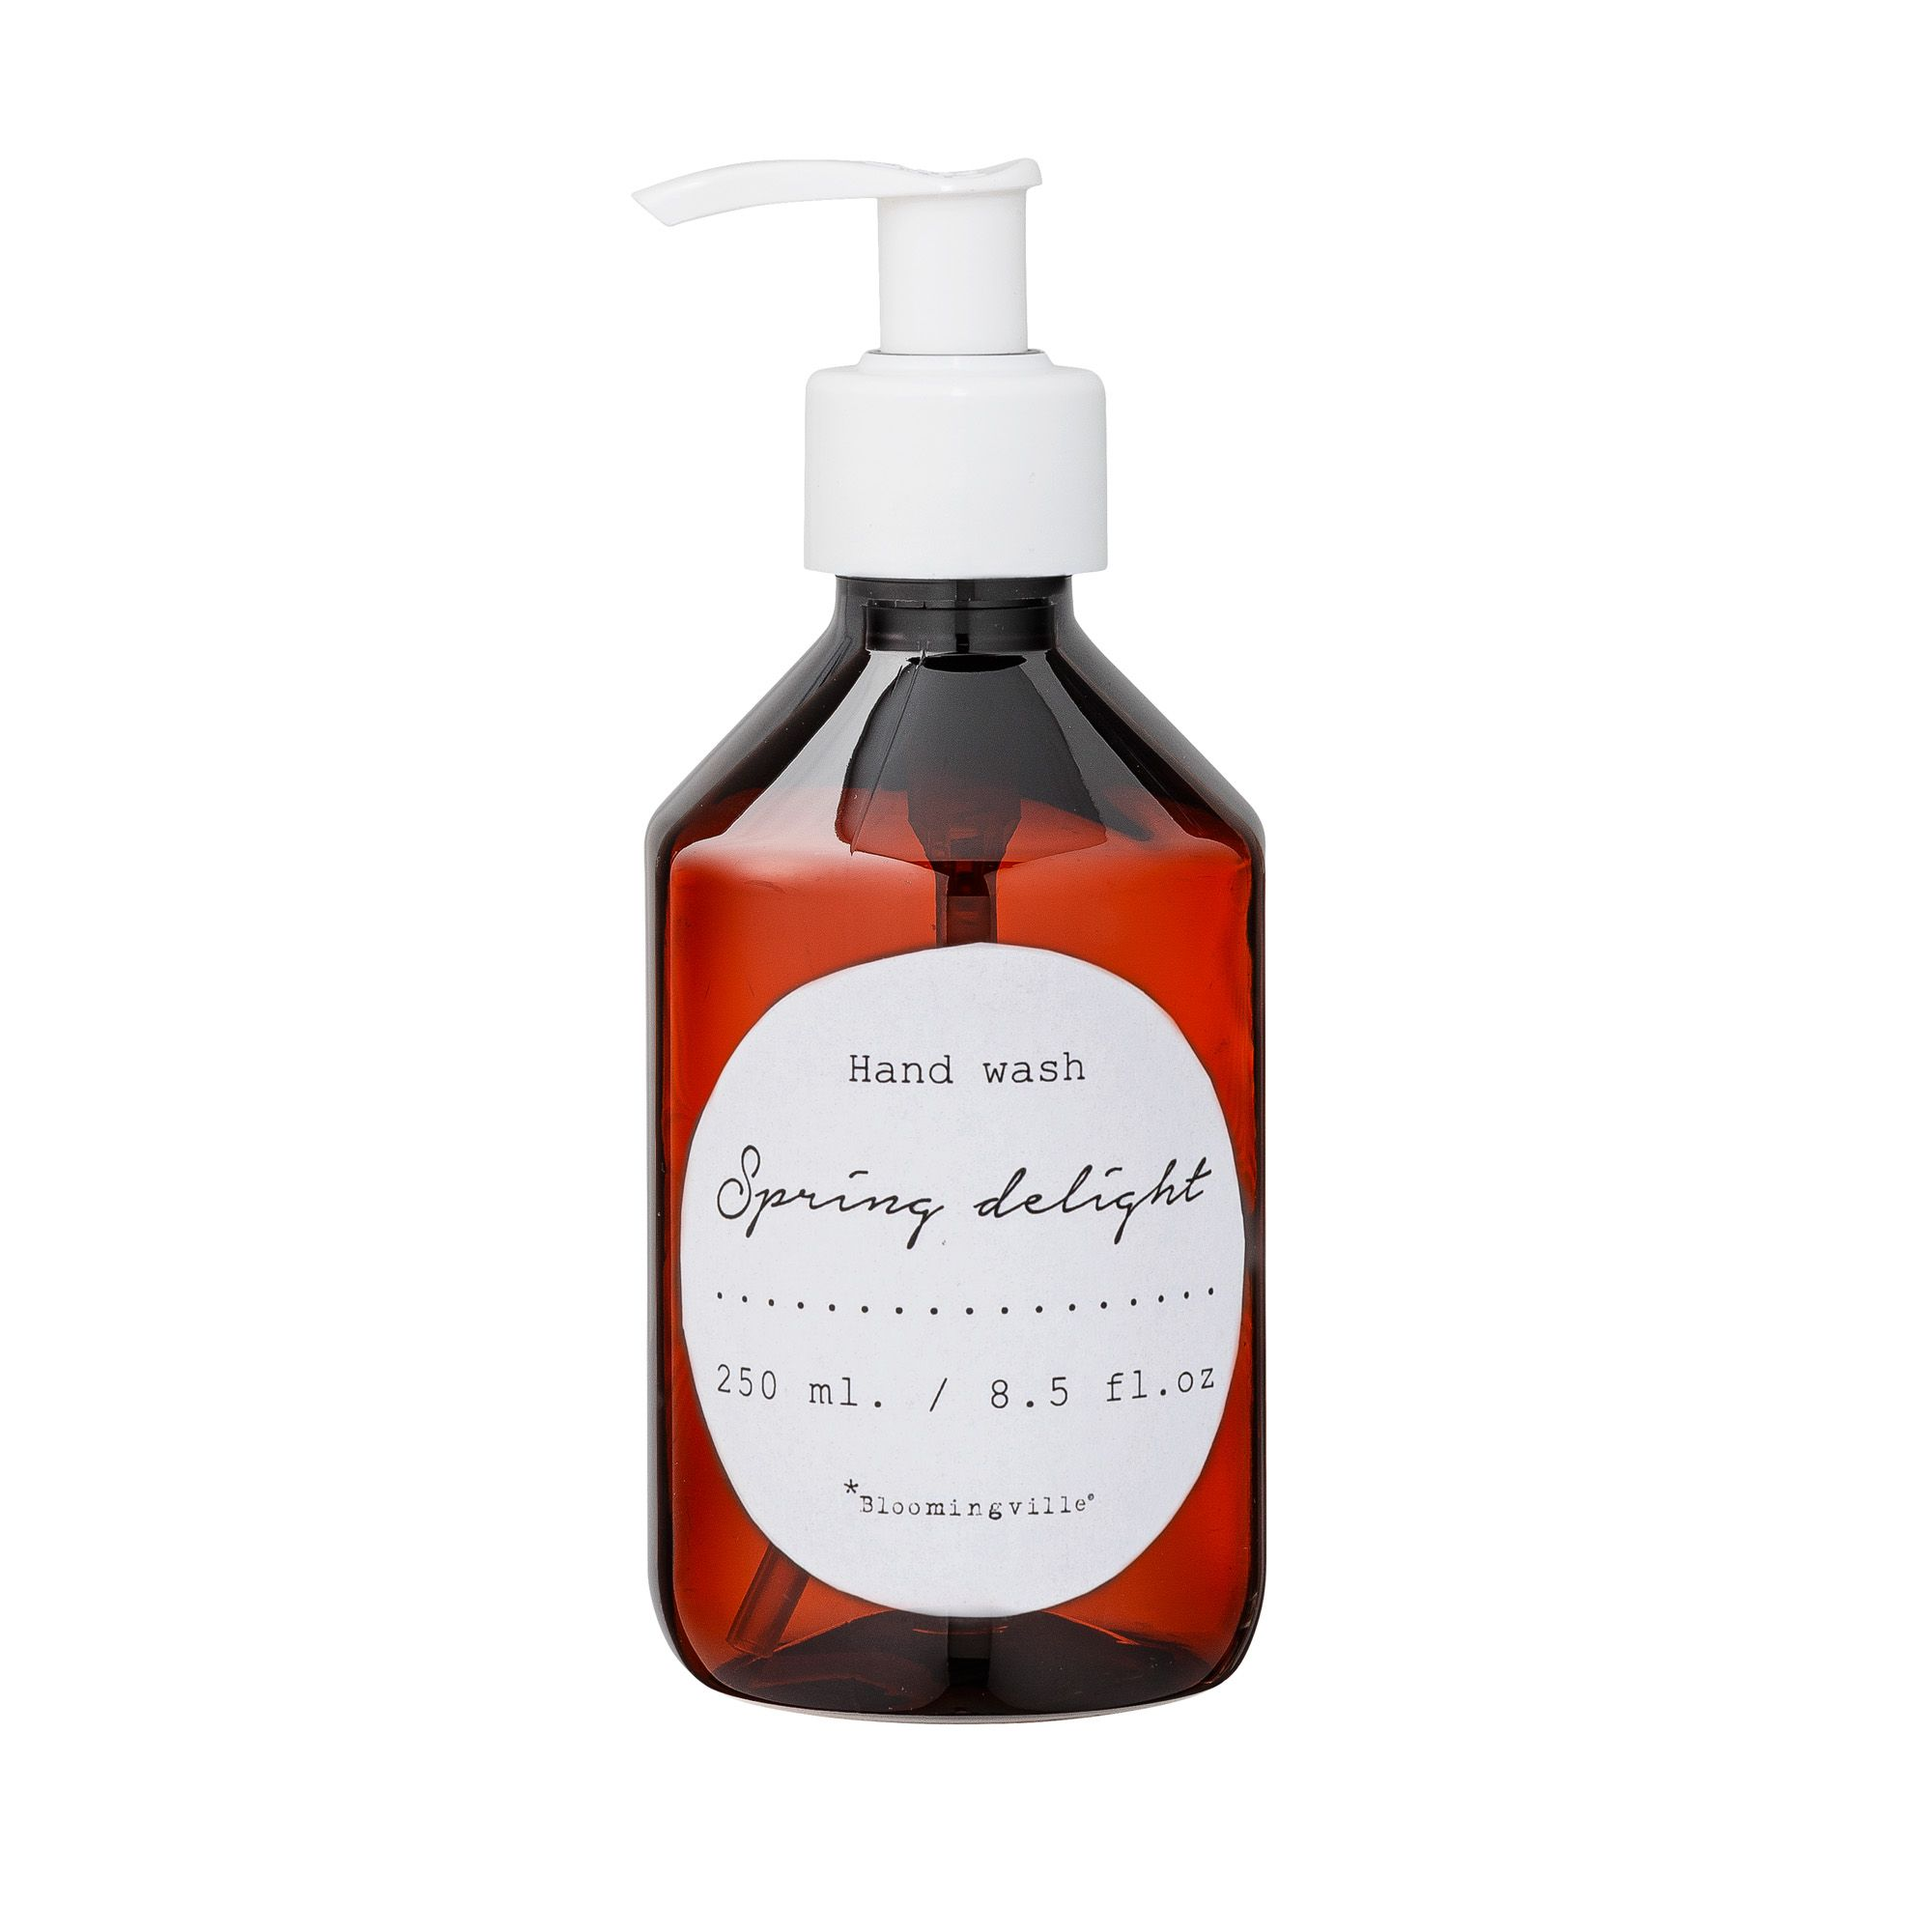 bloomingville spring delight hand wash beautiful to keep next to your zink with images on zink outdoor kitchen id=82121